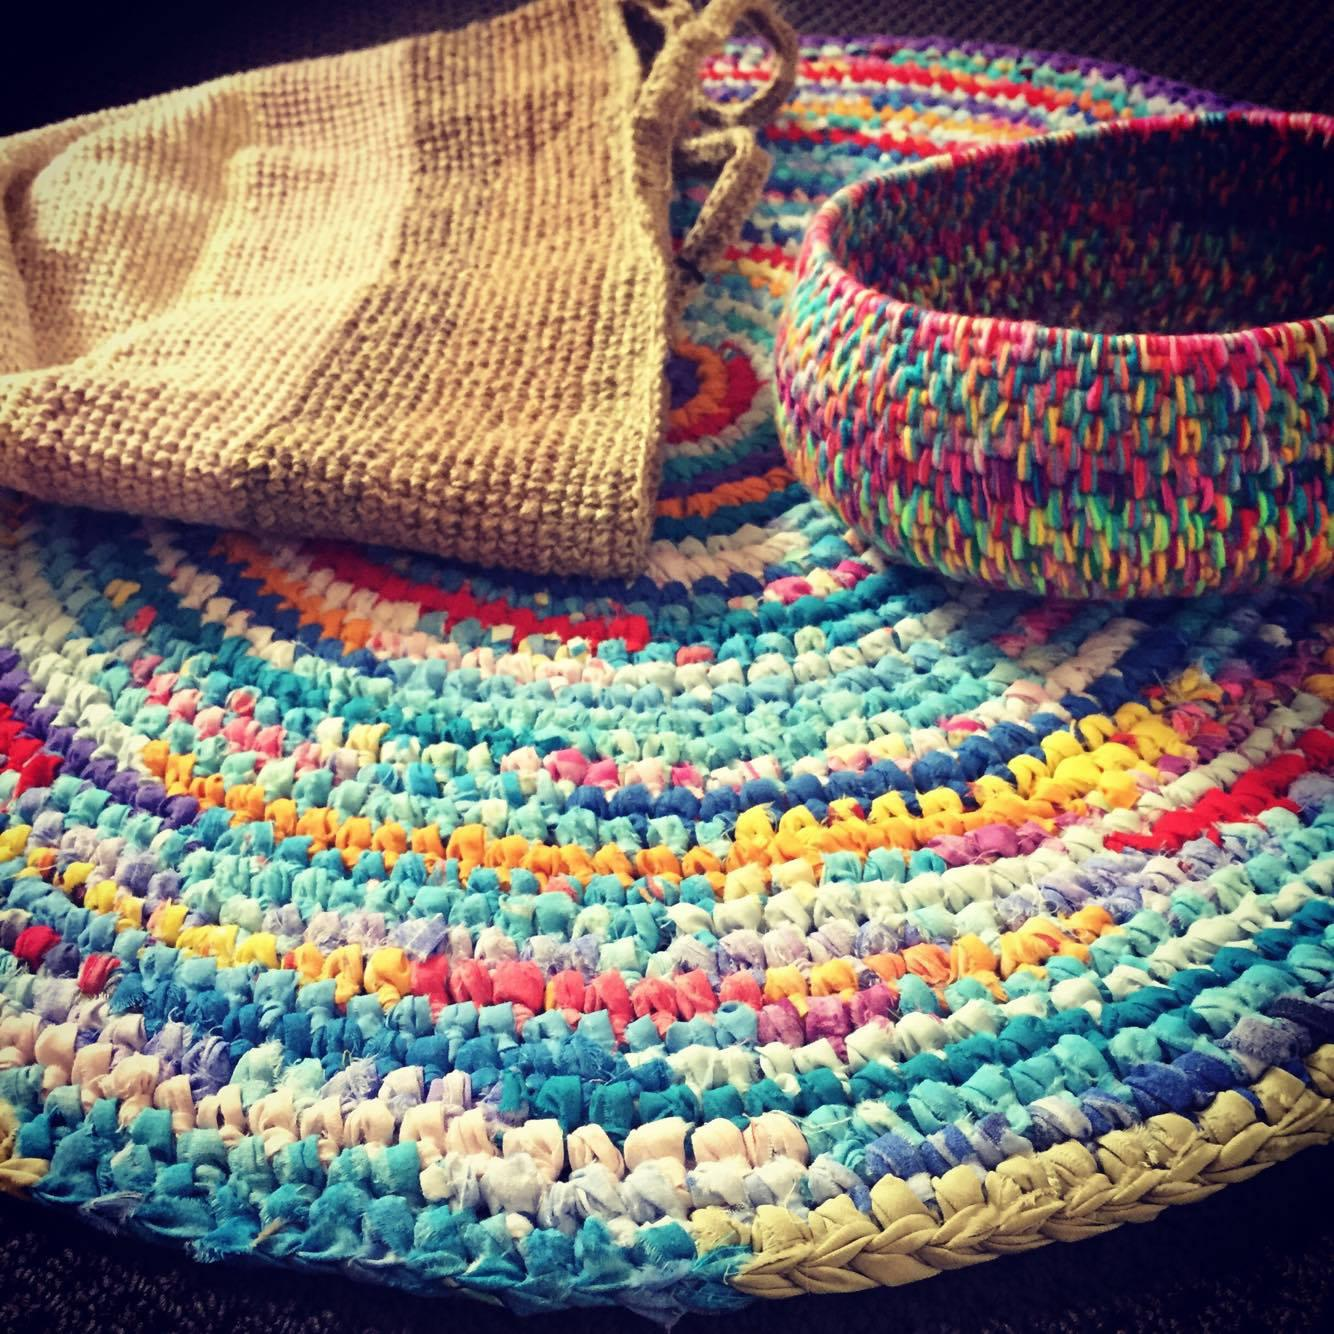 Crochet homewares made from recycled fabrics